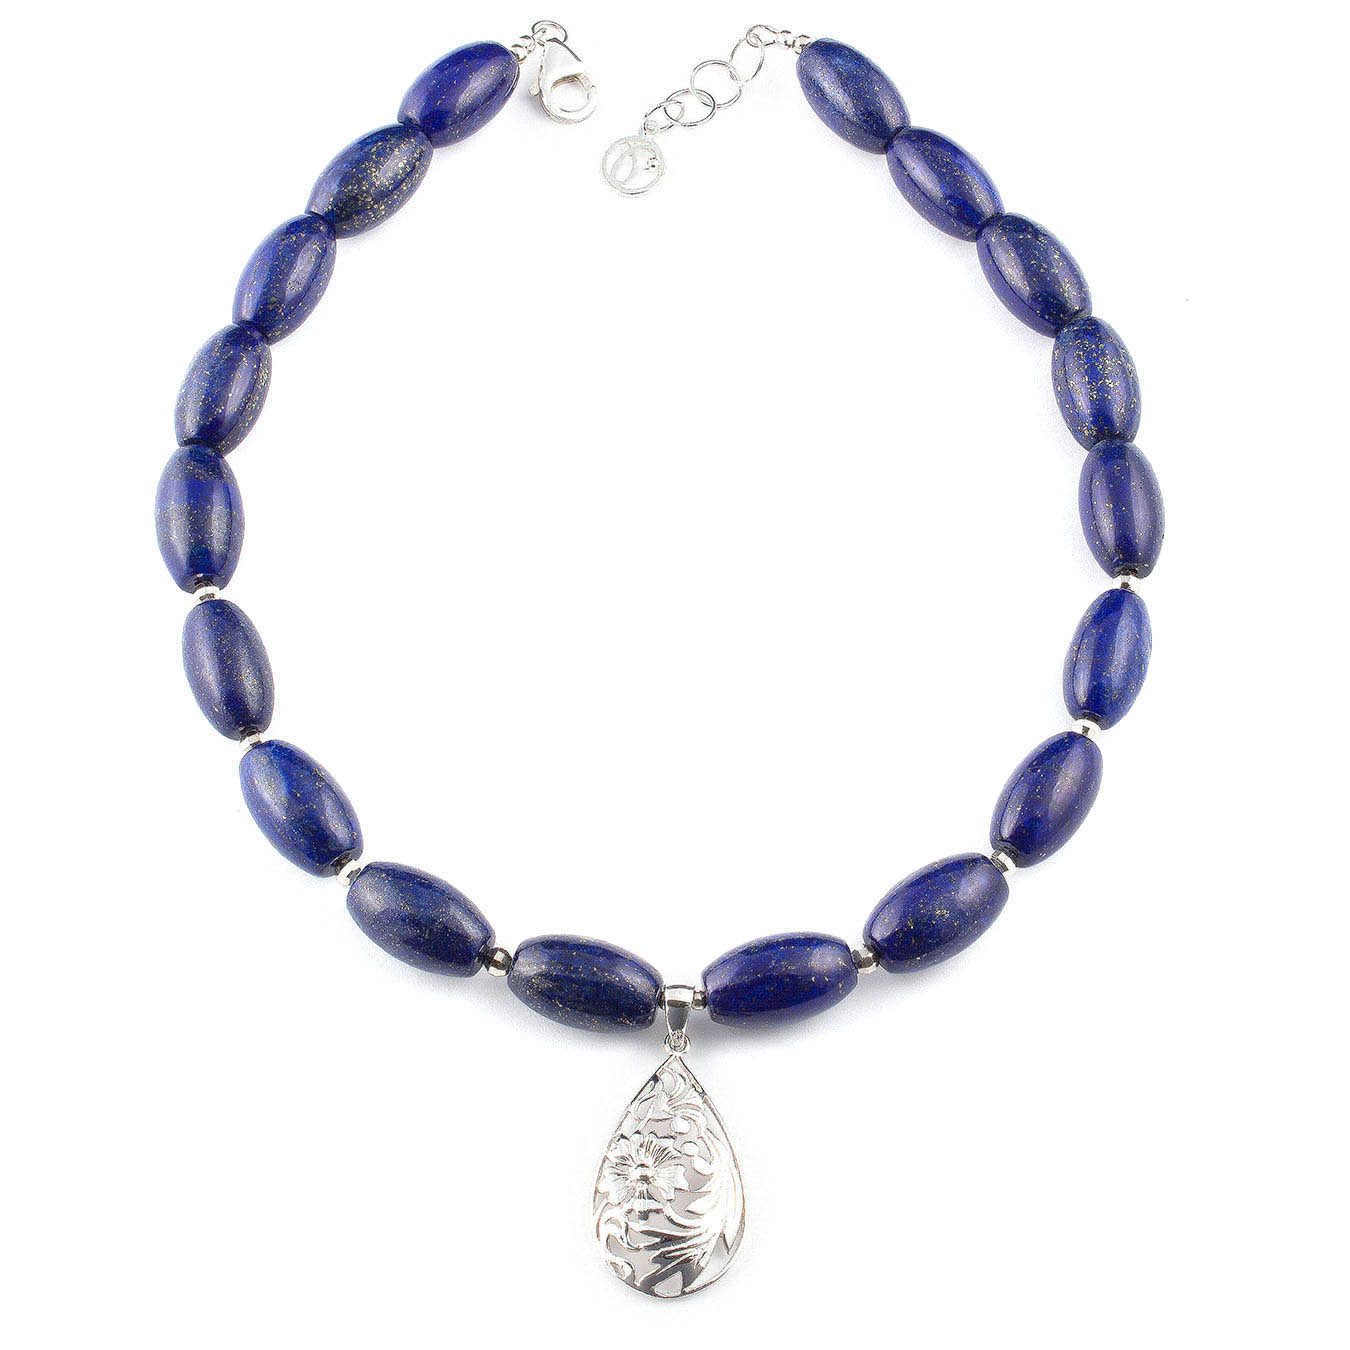 Gemstone pendant necklace set made of twisted lapis lazuli and silver